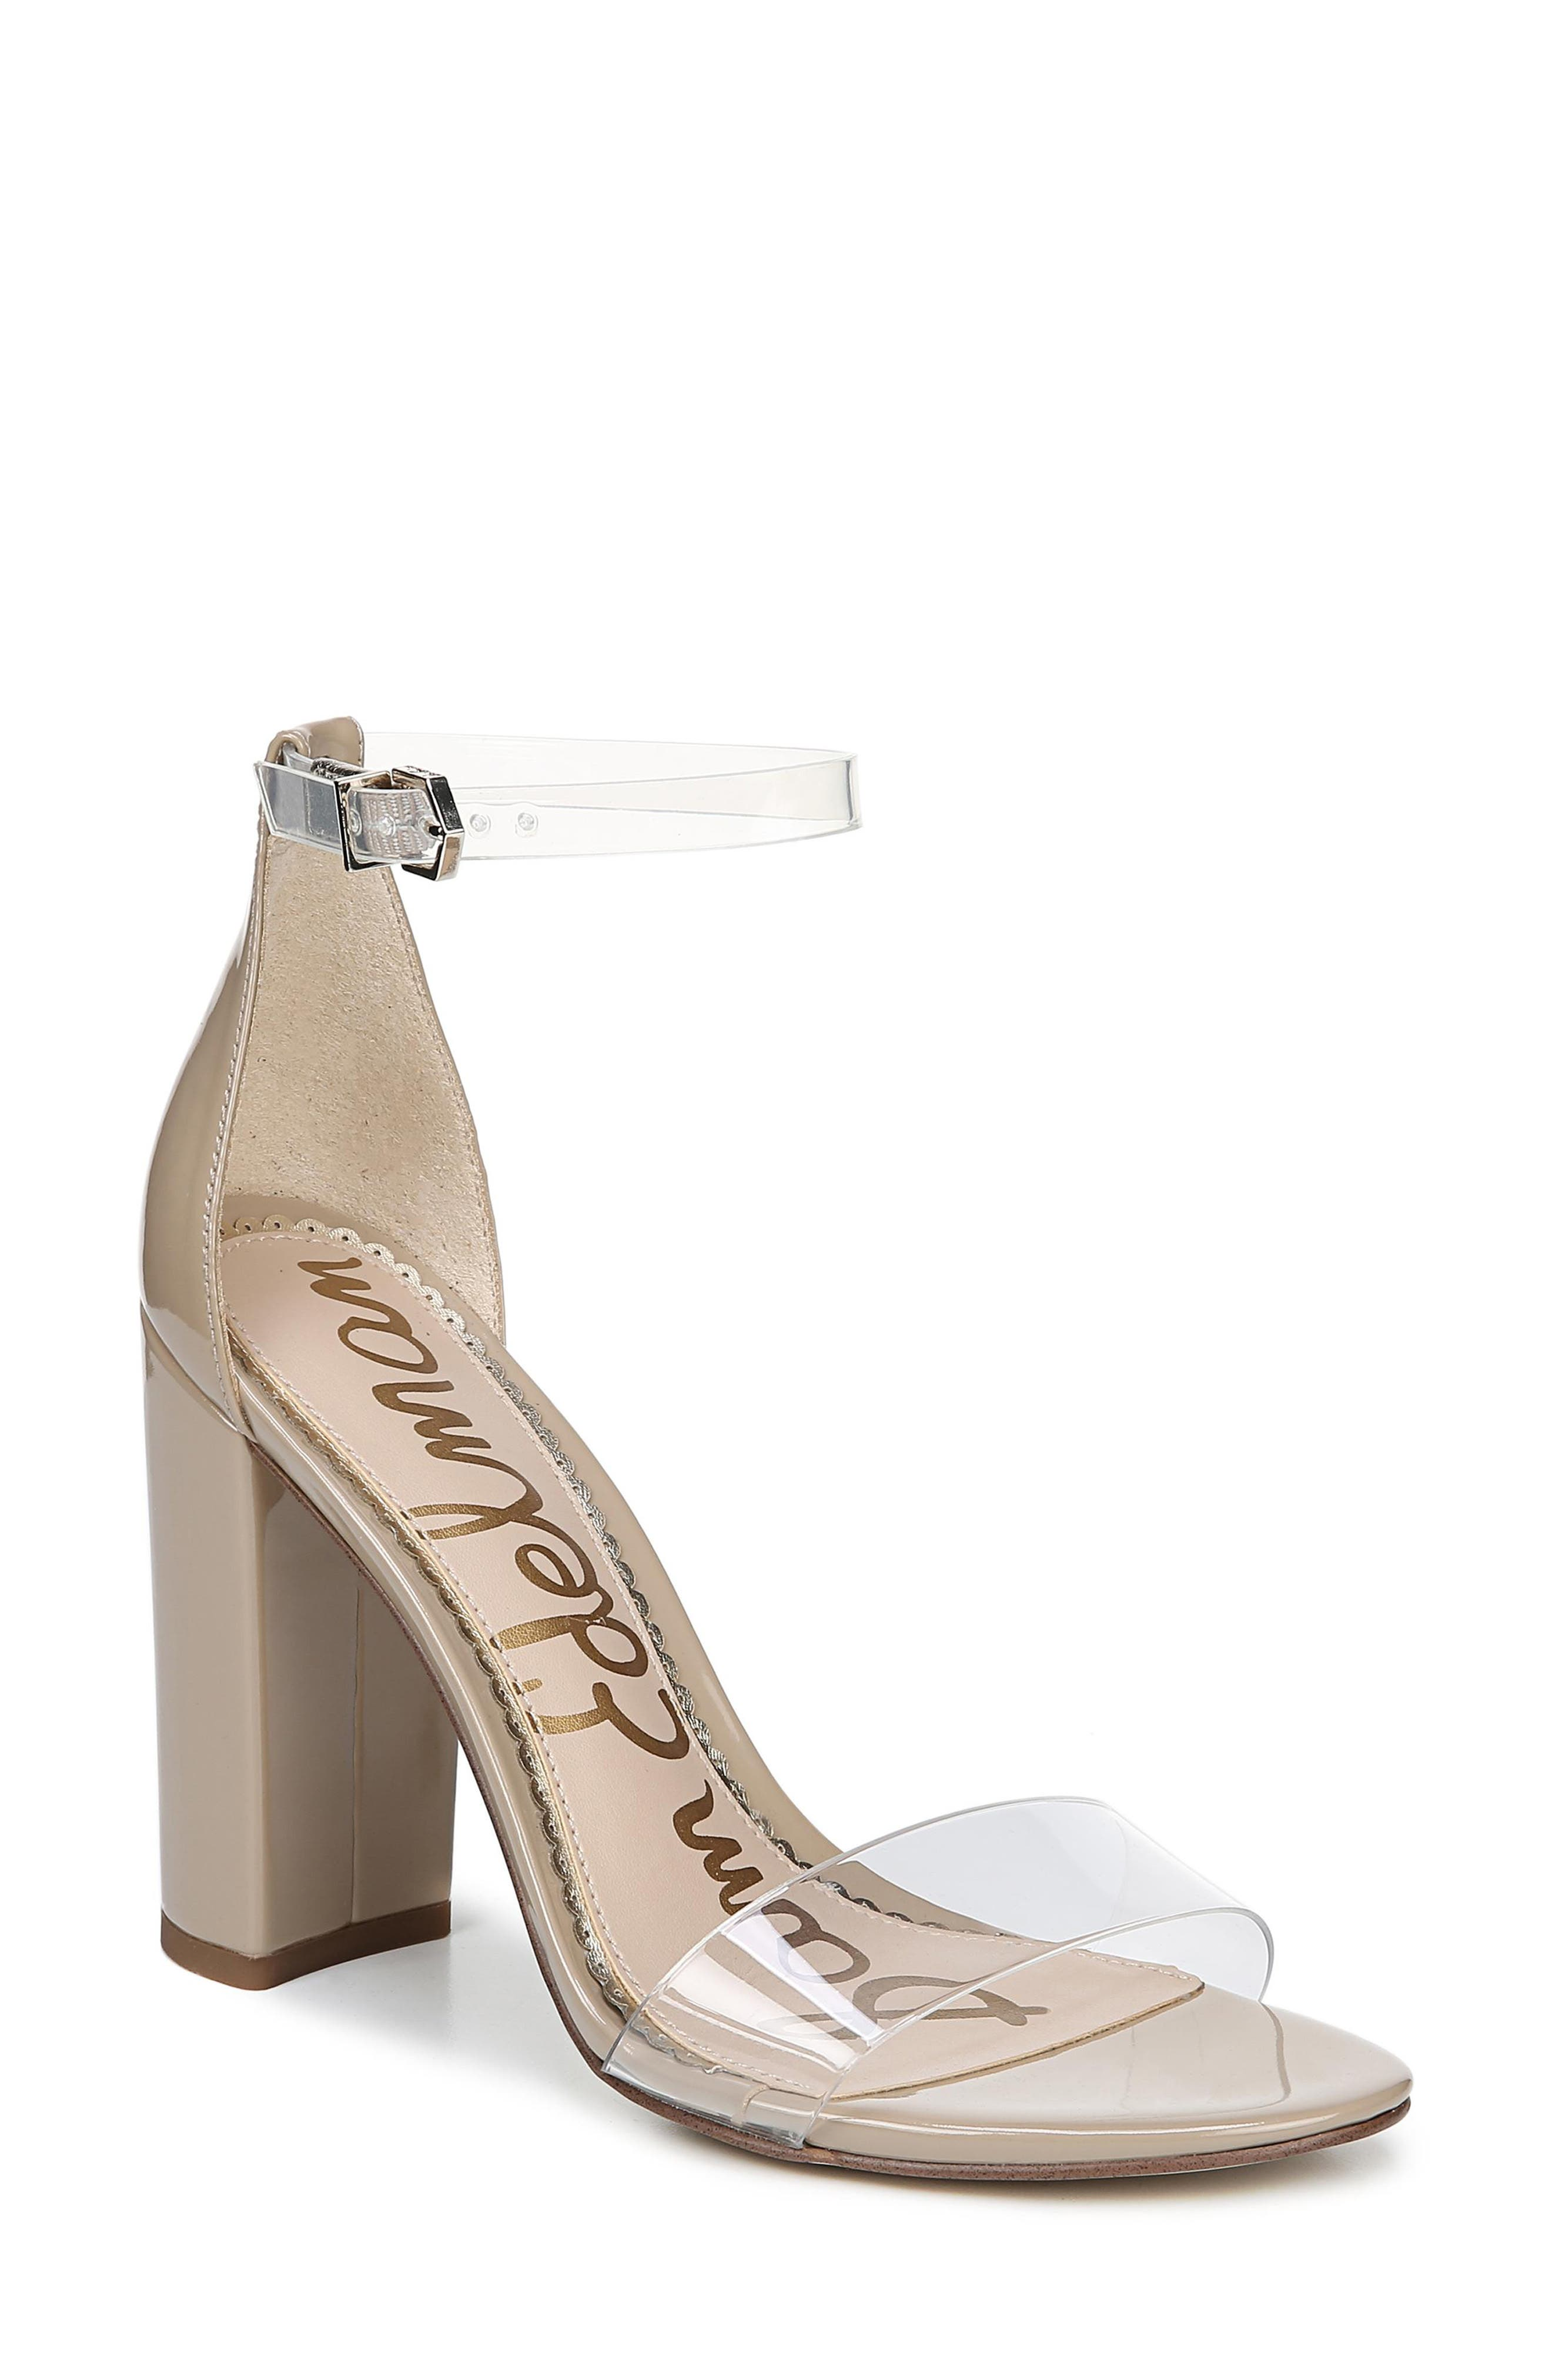 SAM EDELMAN Yaro Vinyl & Leather Ankle Strap Heels in Clear/ Nude Patent Leather